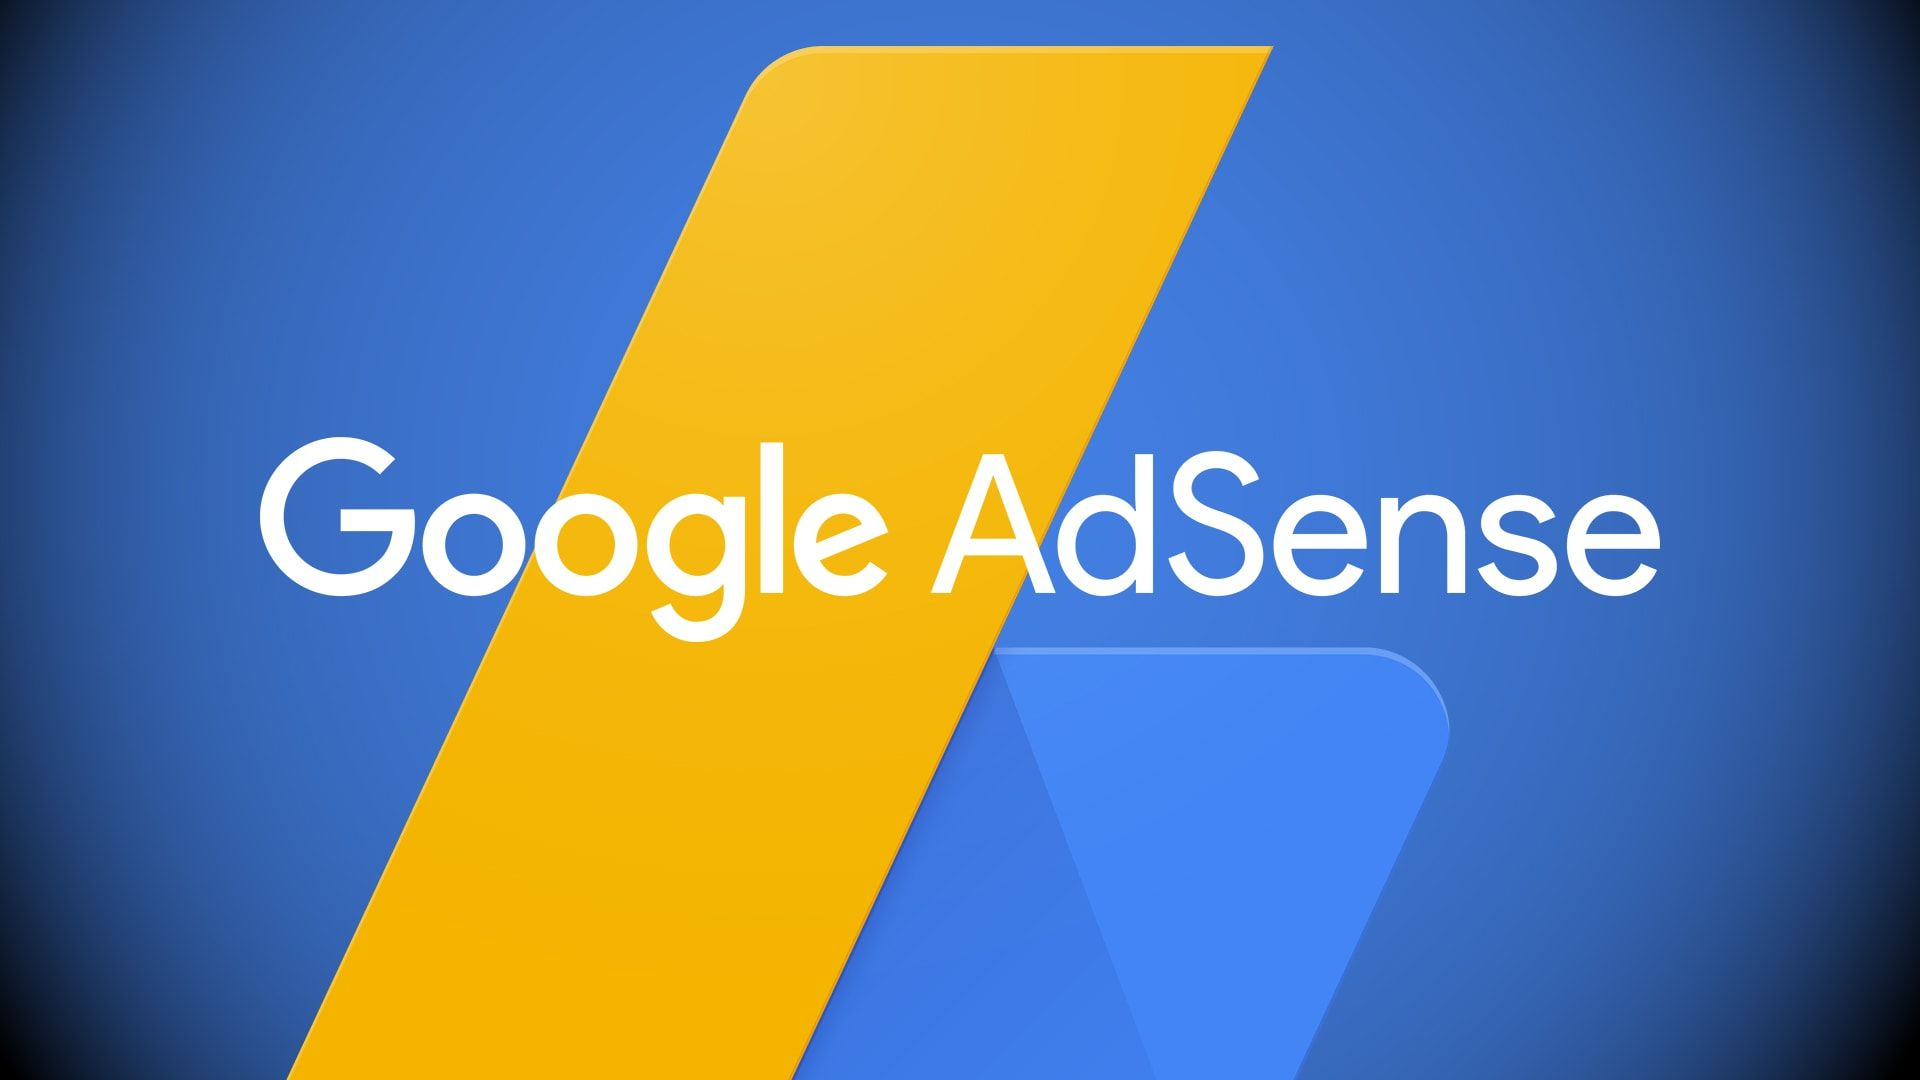 adsense, Google adsense, win money